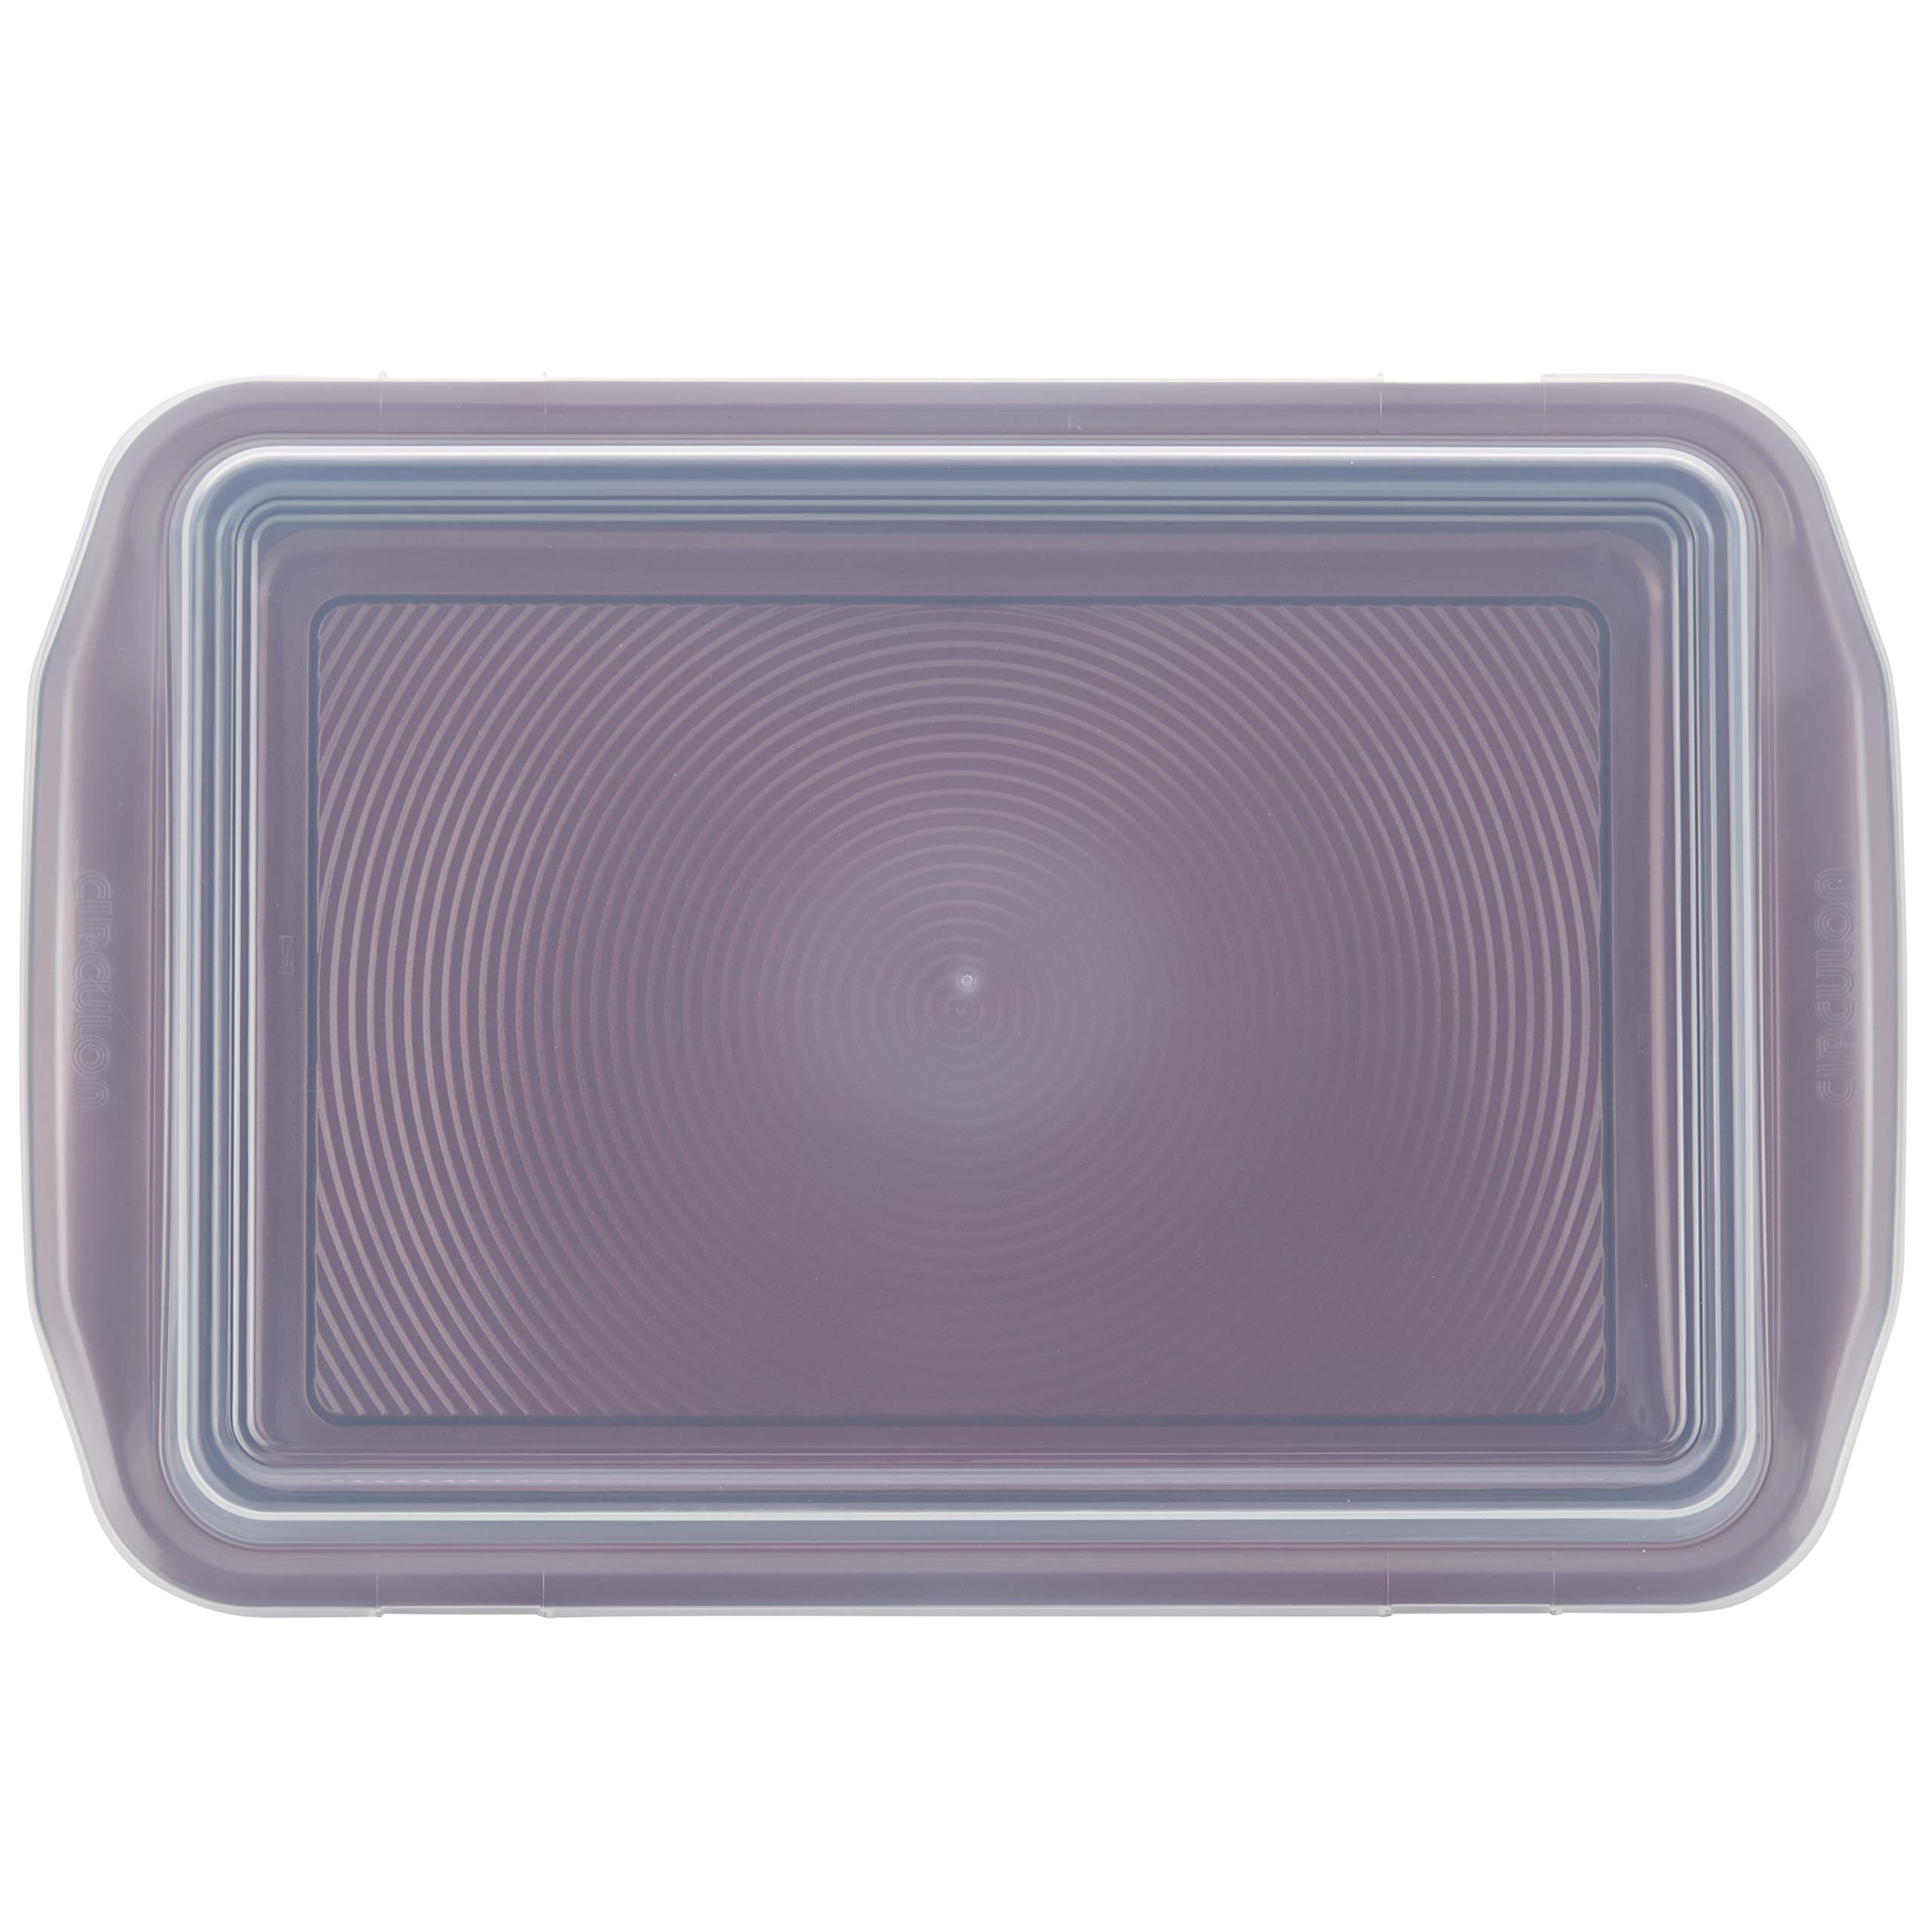 Circulon 47740 10-Piece Steel Bakeware Set, Merlot by Circulon (Image #3)